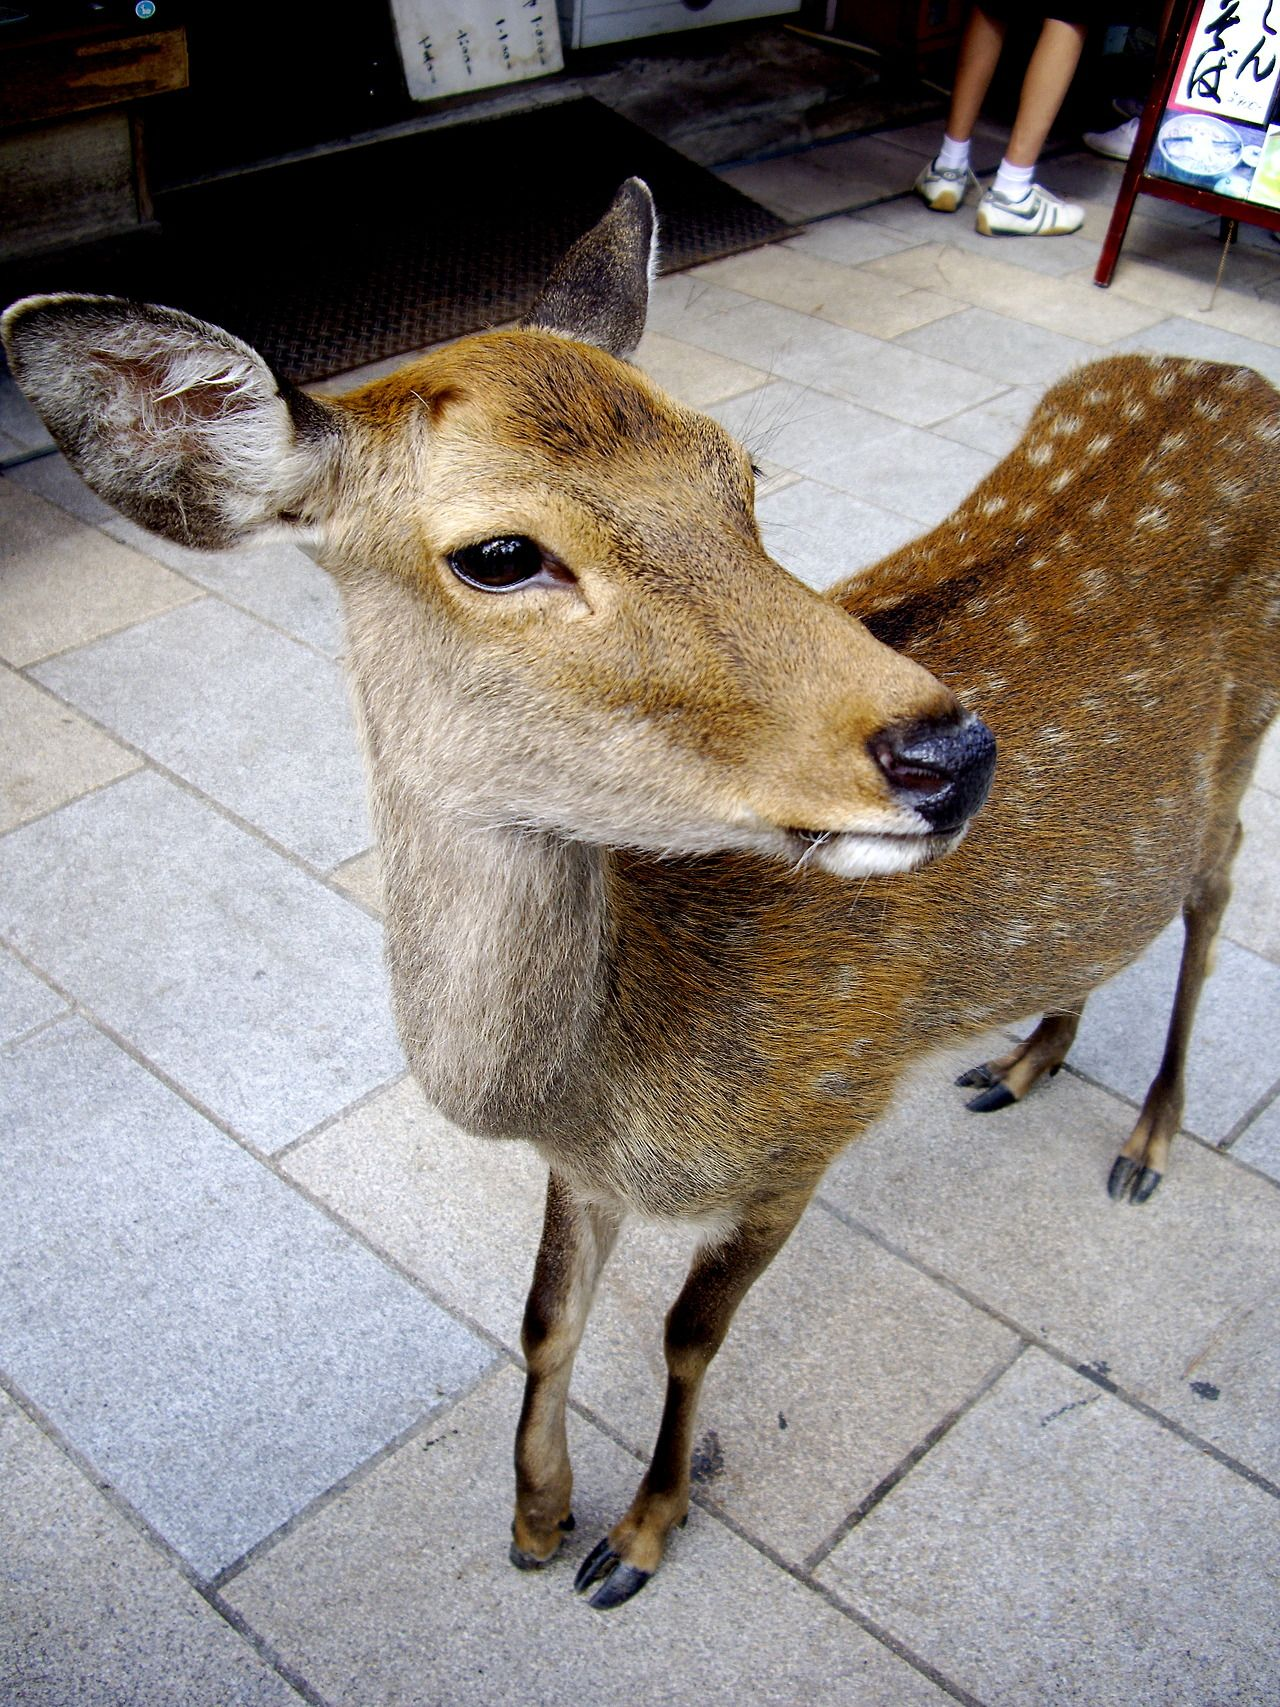 My Deer friend @ Nara, Japan.